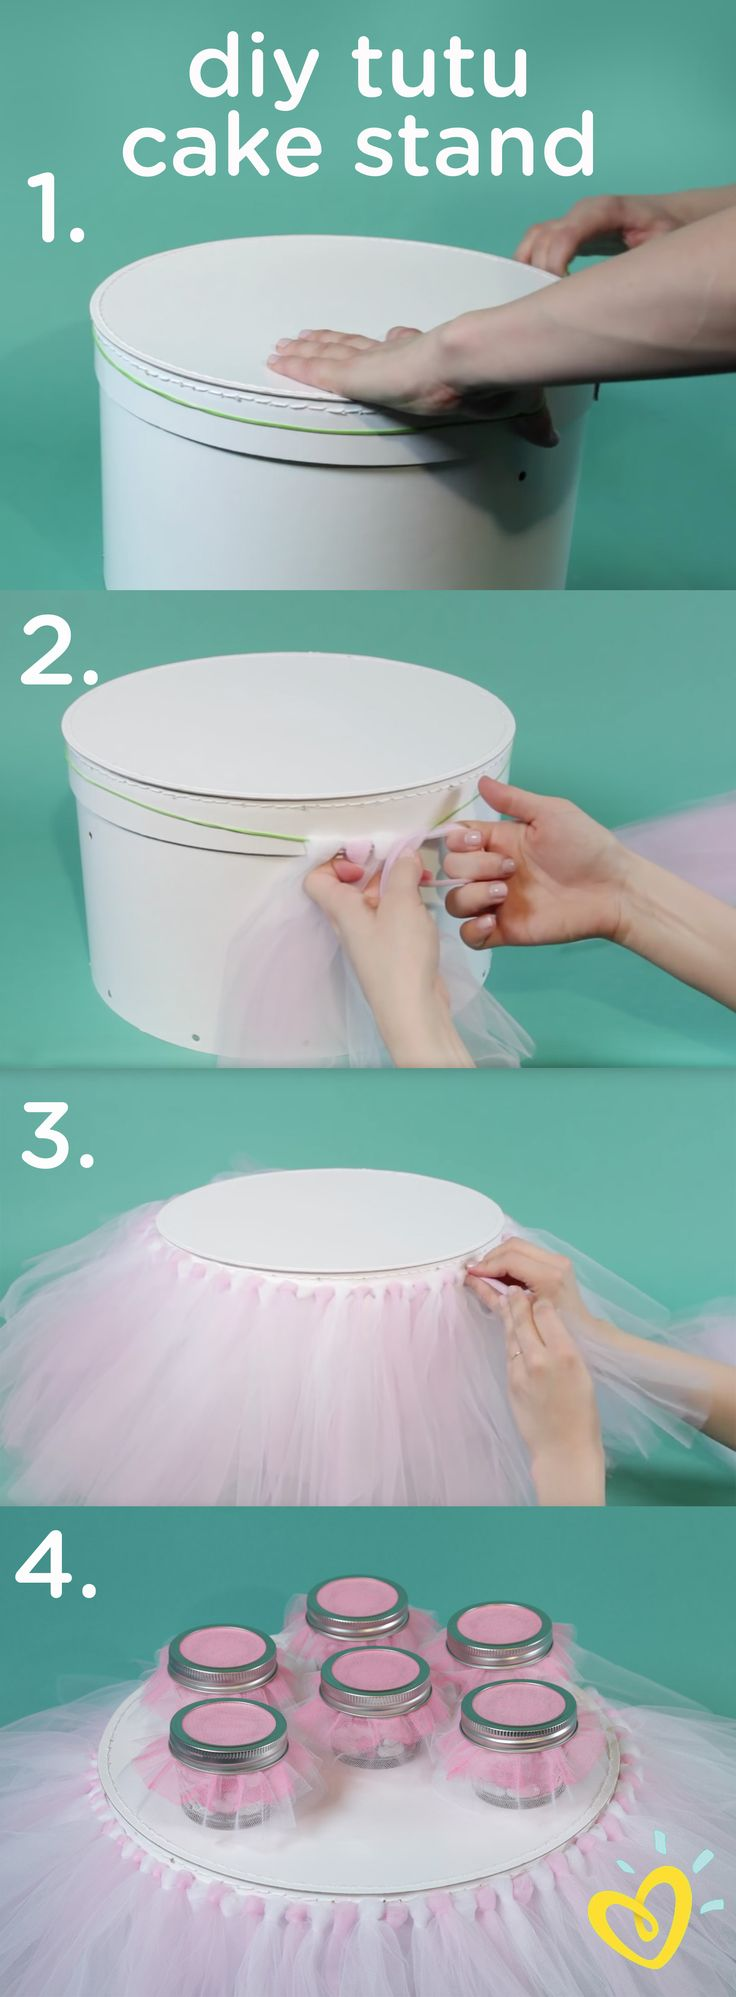 Add some pretty pink to the cake stand at your next party with this DIY tutu cake stand, perfect for a baby girl's princess-themed baby shower or first birthday celebration. This video tutorial will show you how to create this look in just a few simple steps!